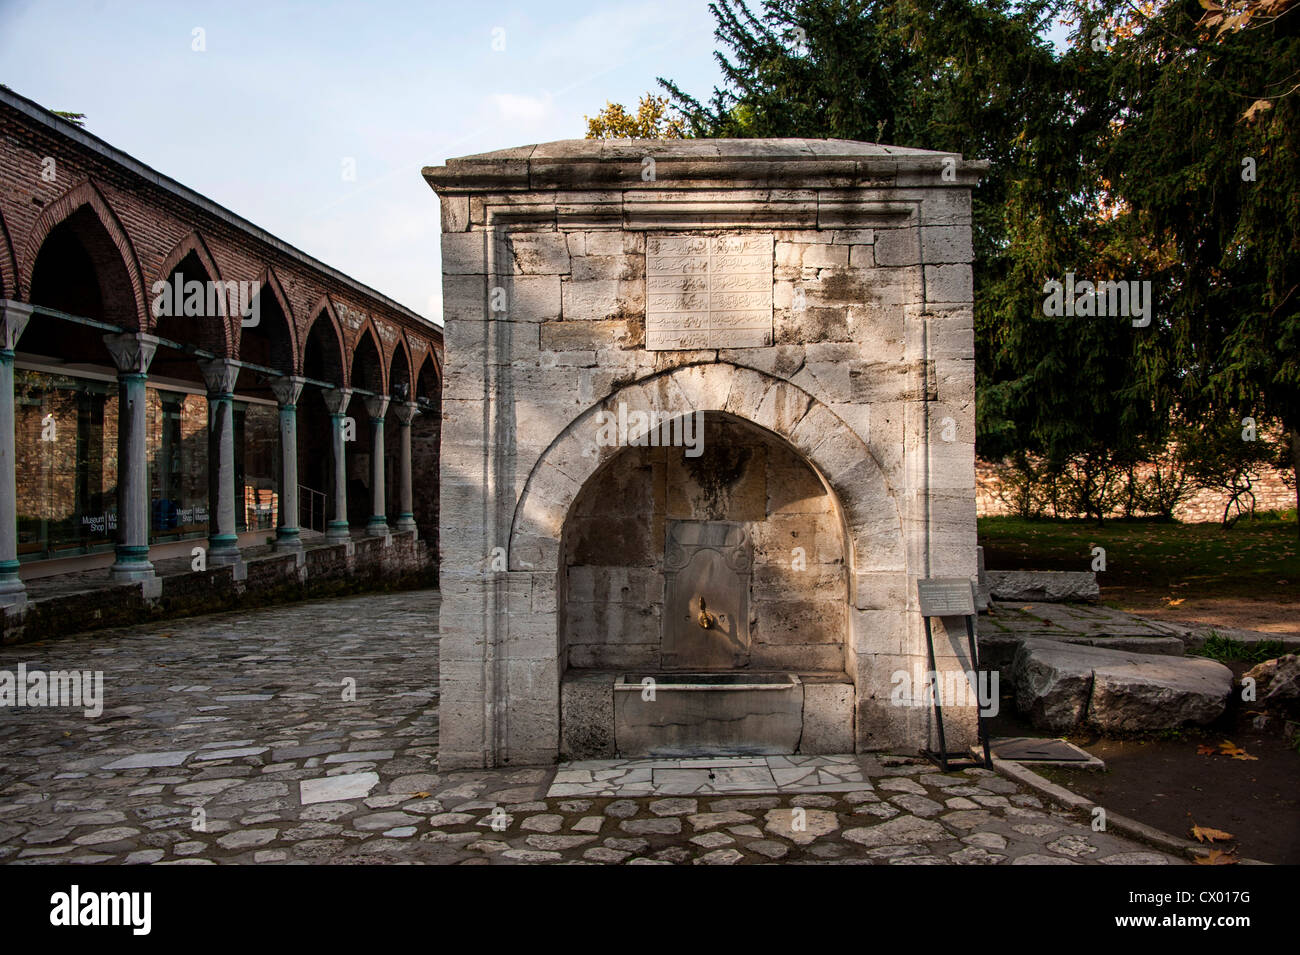 An old well inside the Topkapi Palace in Istanbul Turkey Stock Photo